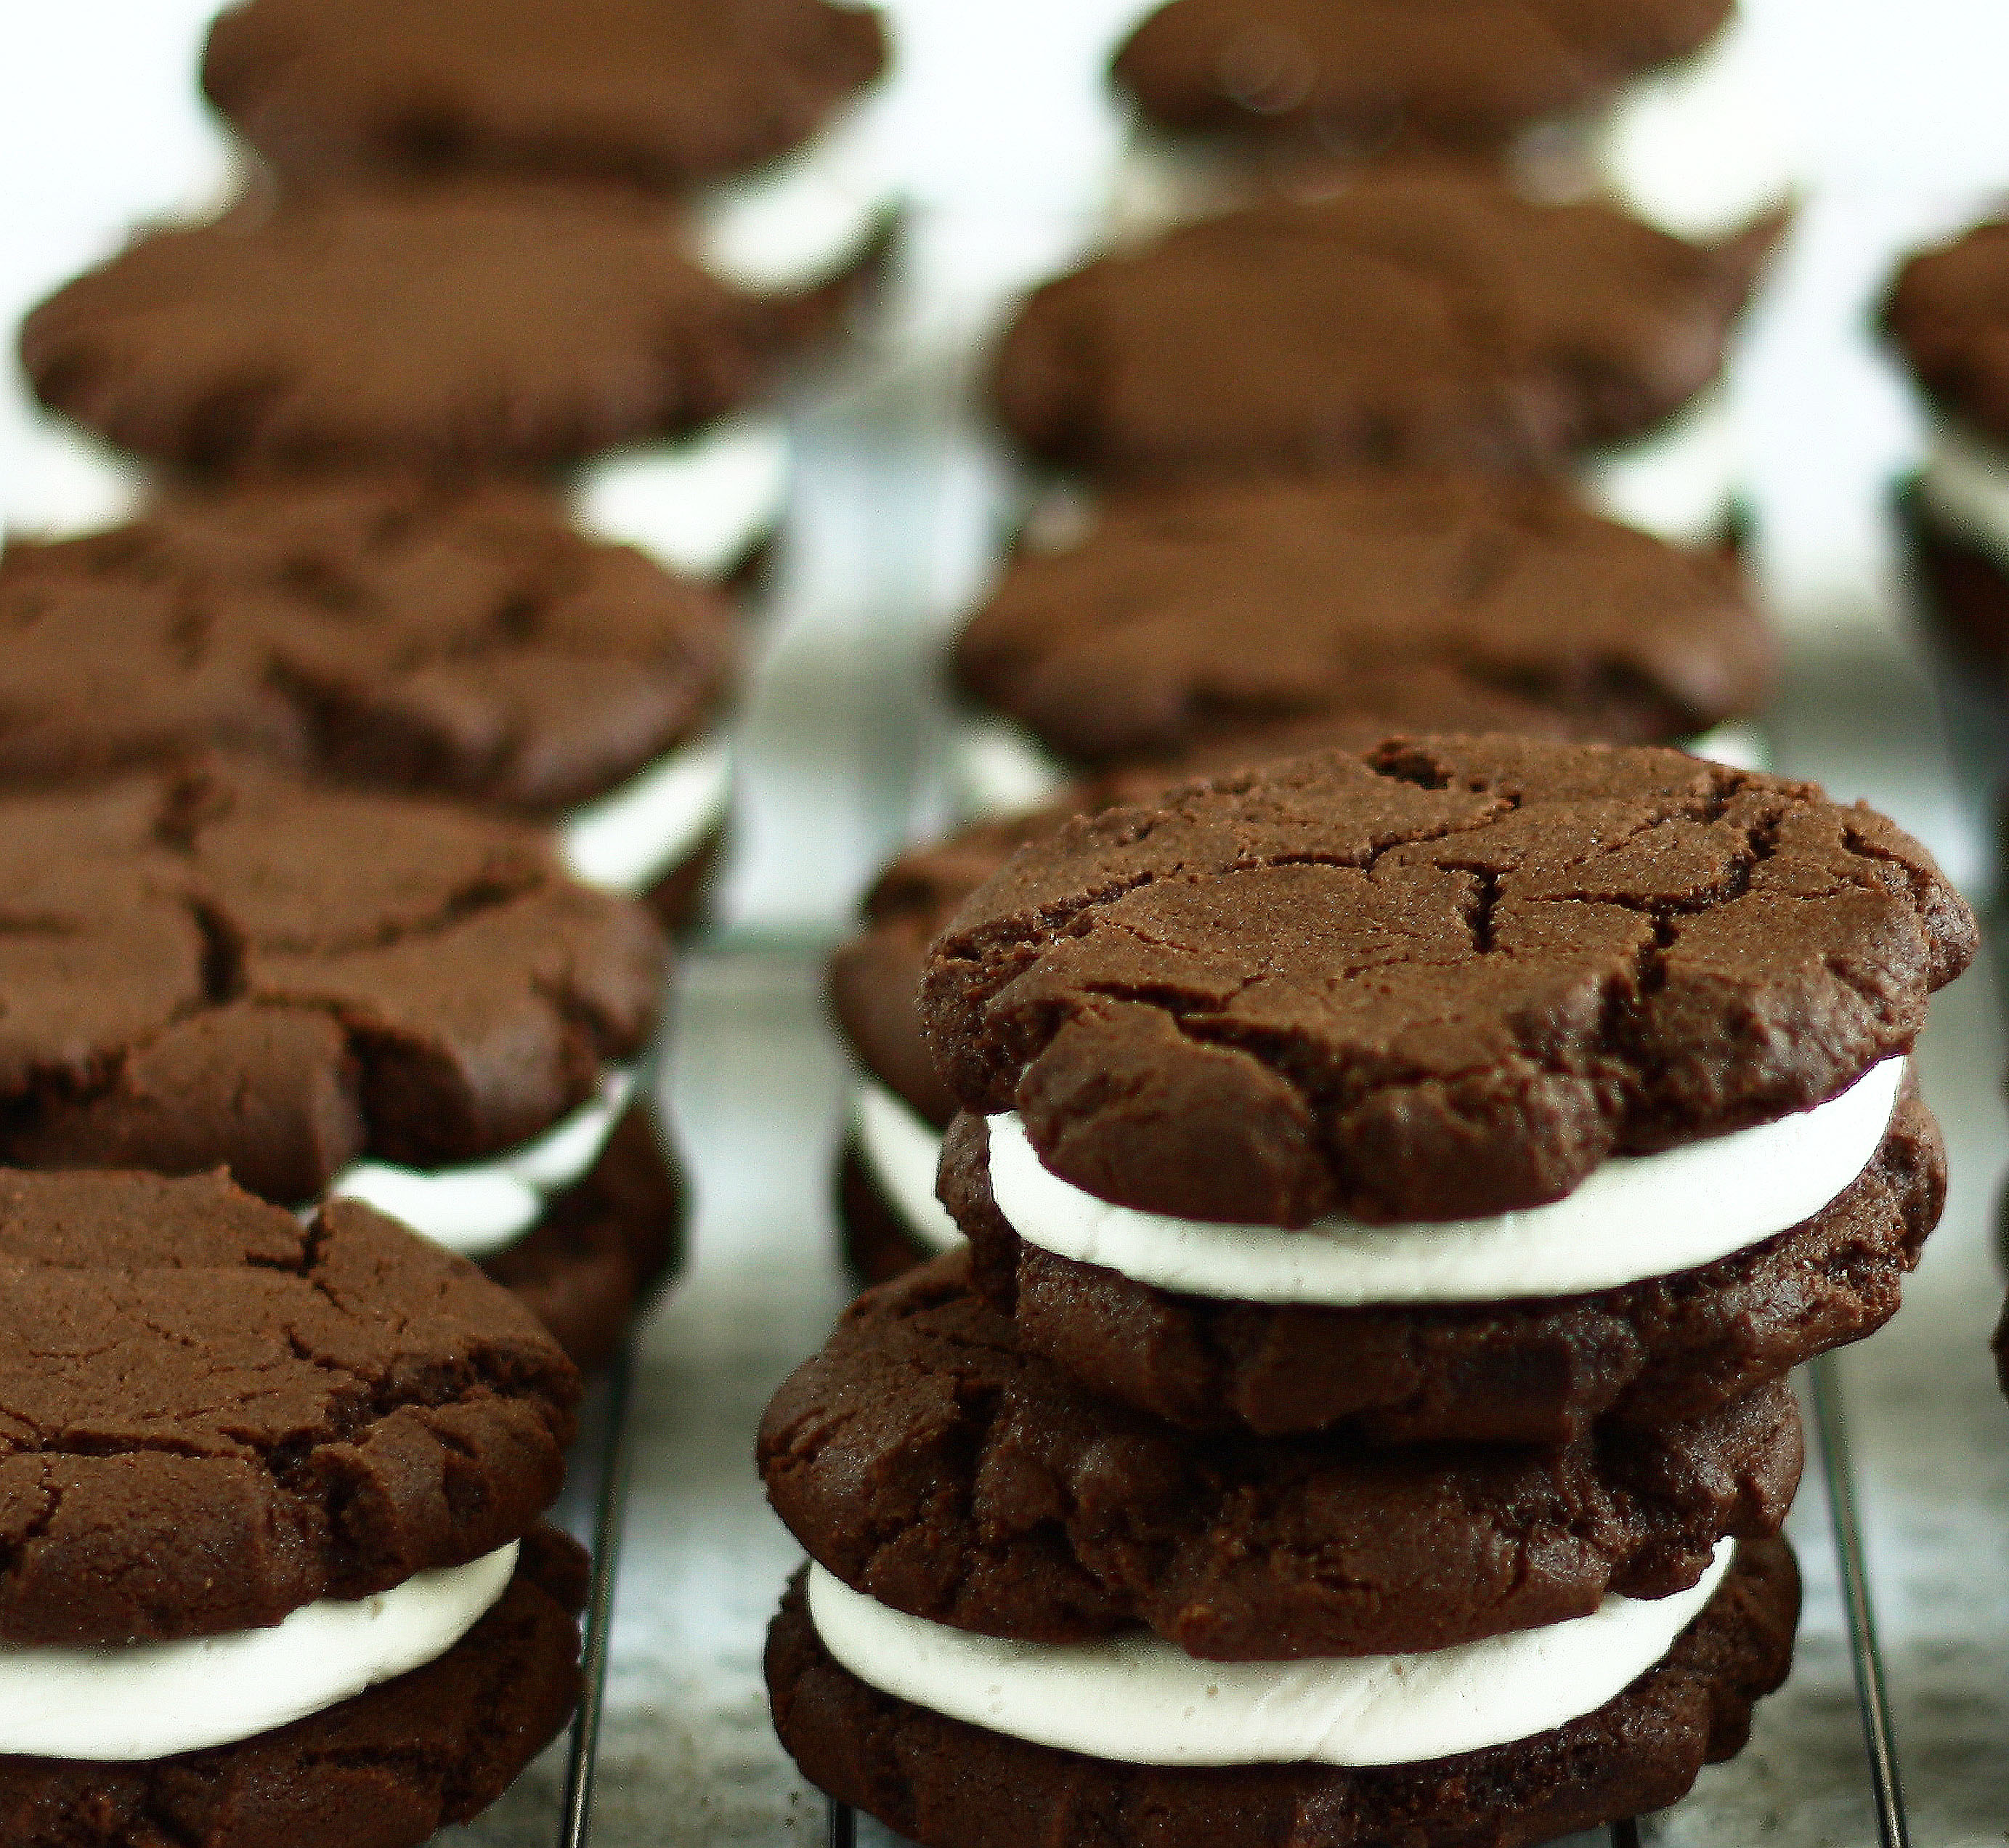 Homemade Oreo Cookies | Culinary Adventures in the Kitchen